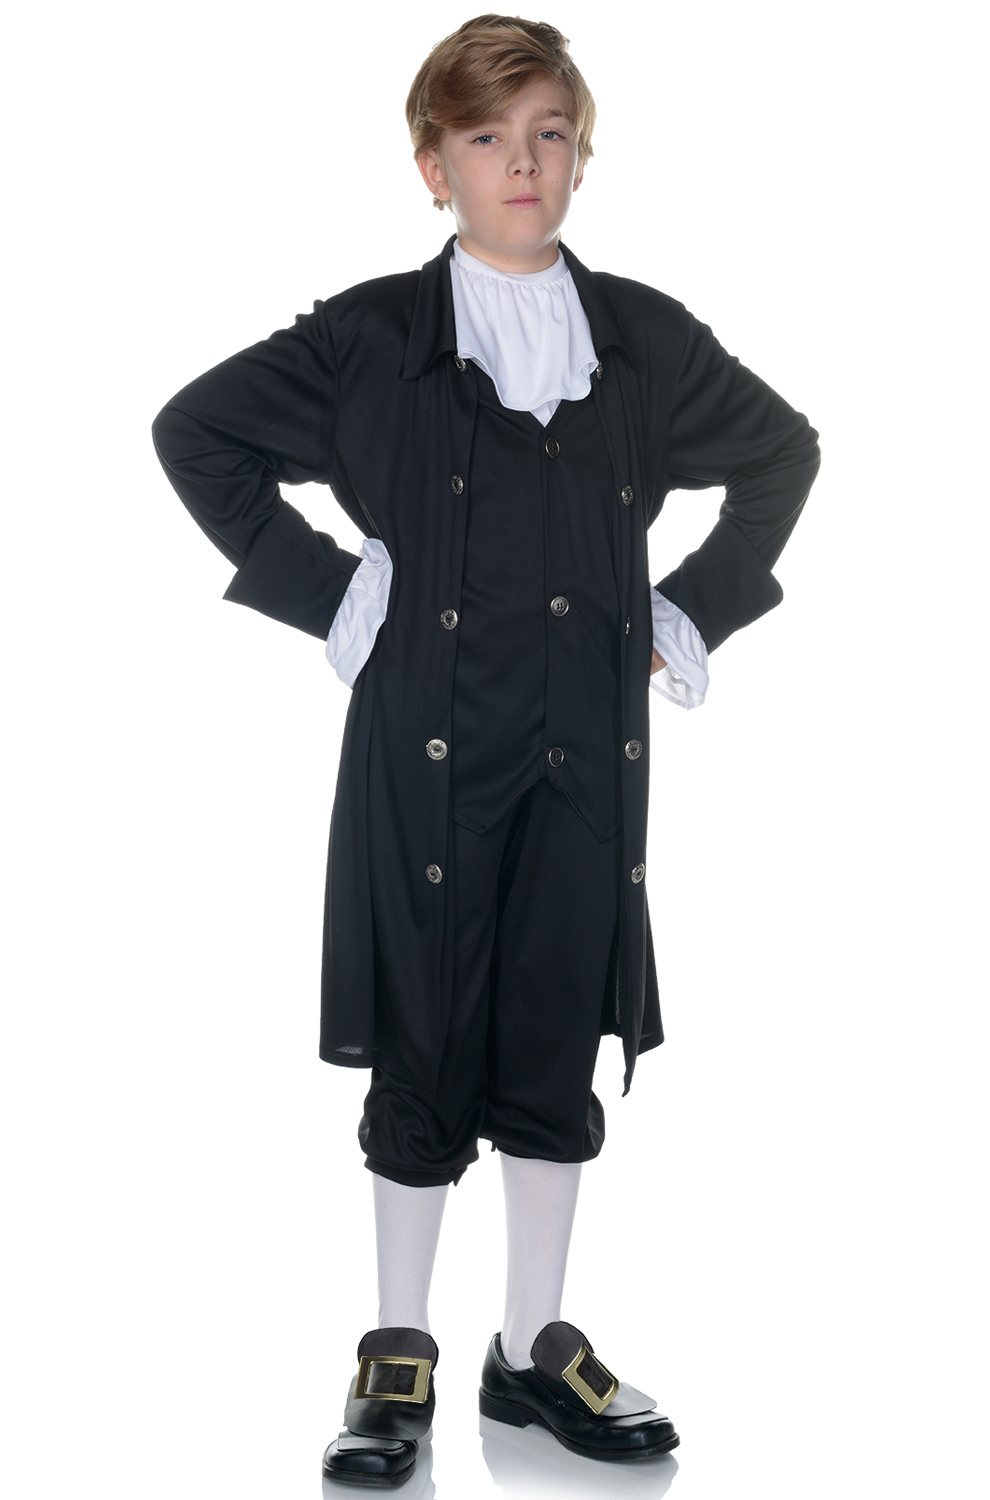 Childrens historical costumes purecostumes john adams child costume solutioingenieria Image collections